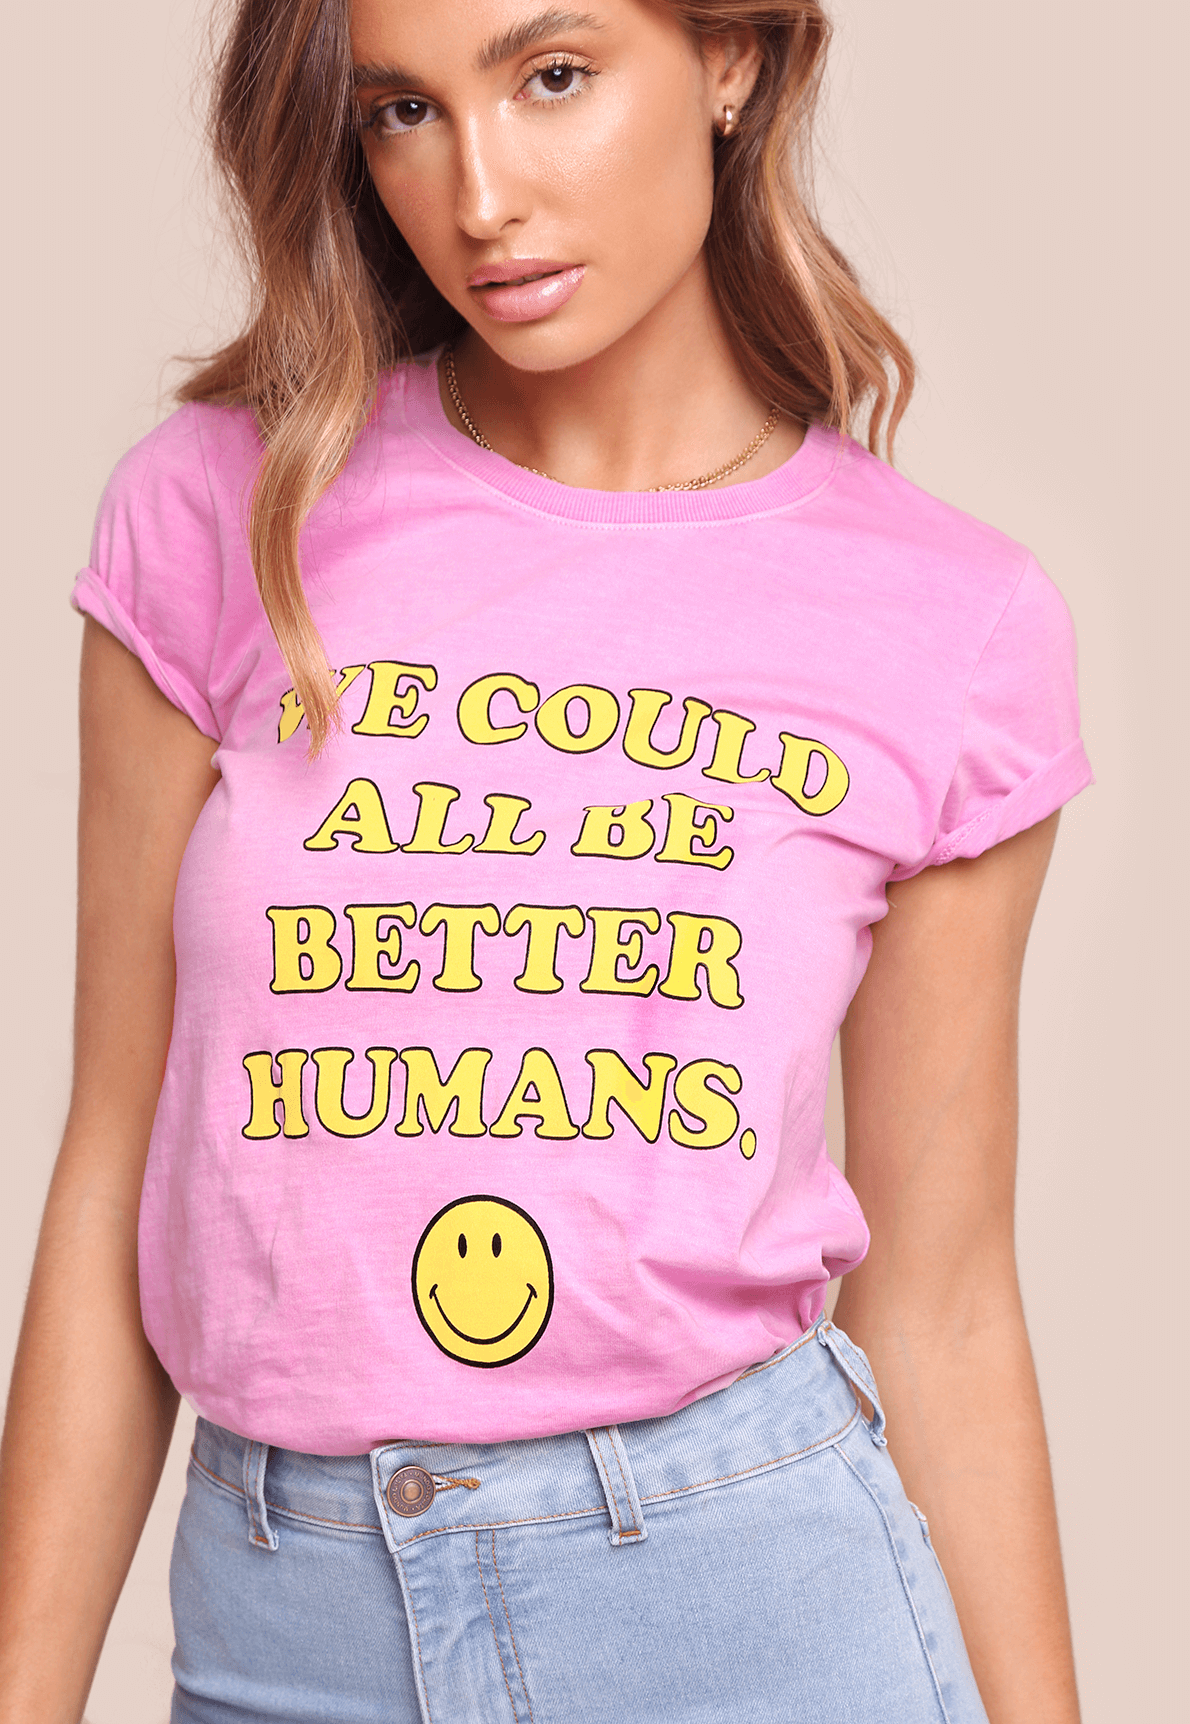 33535-T-shirt-Better-Humans-mundo-lolita-02